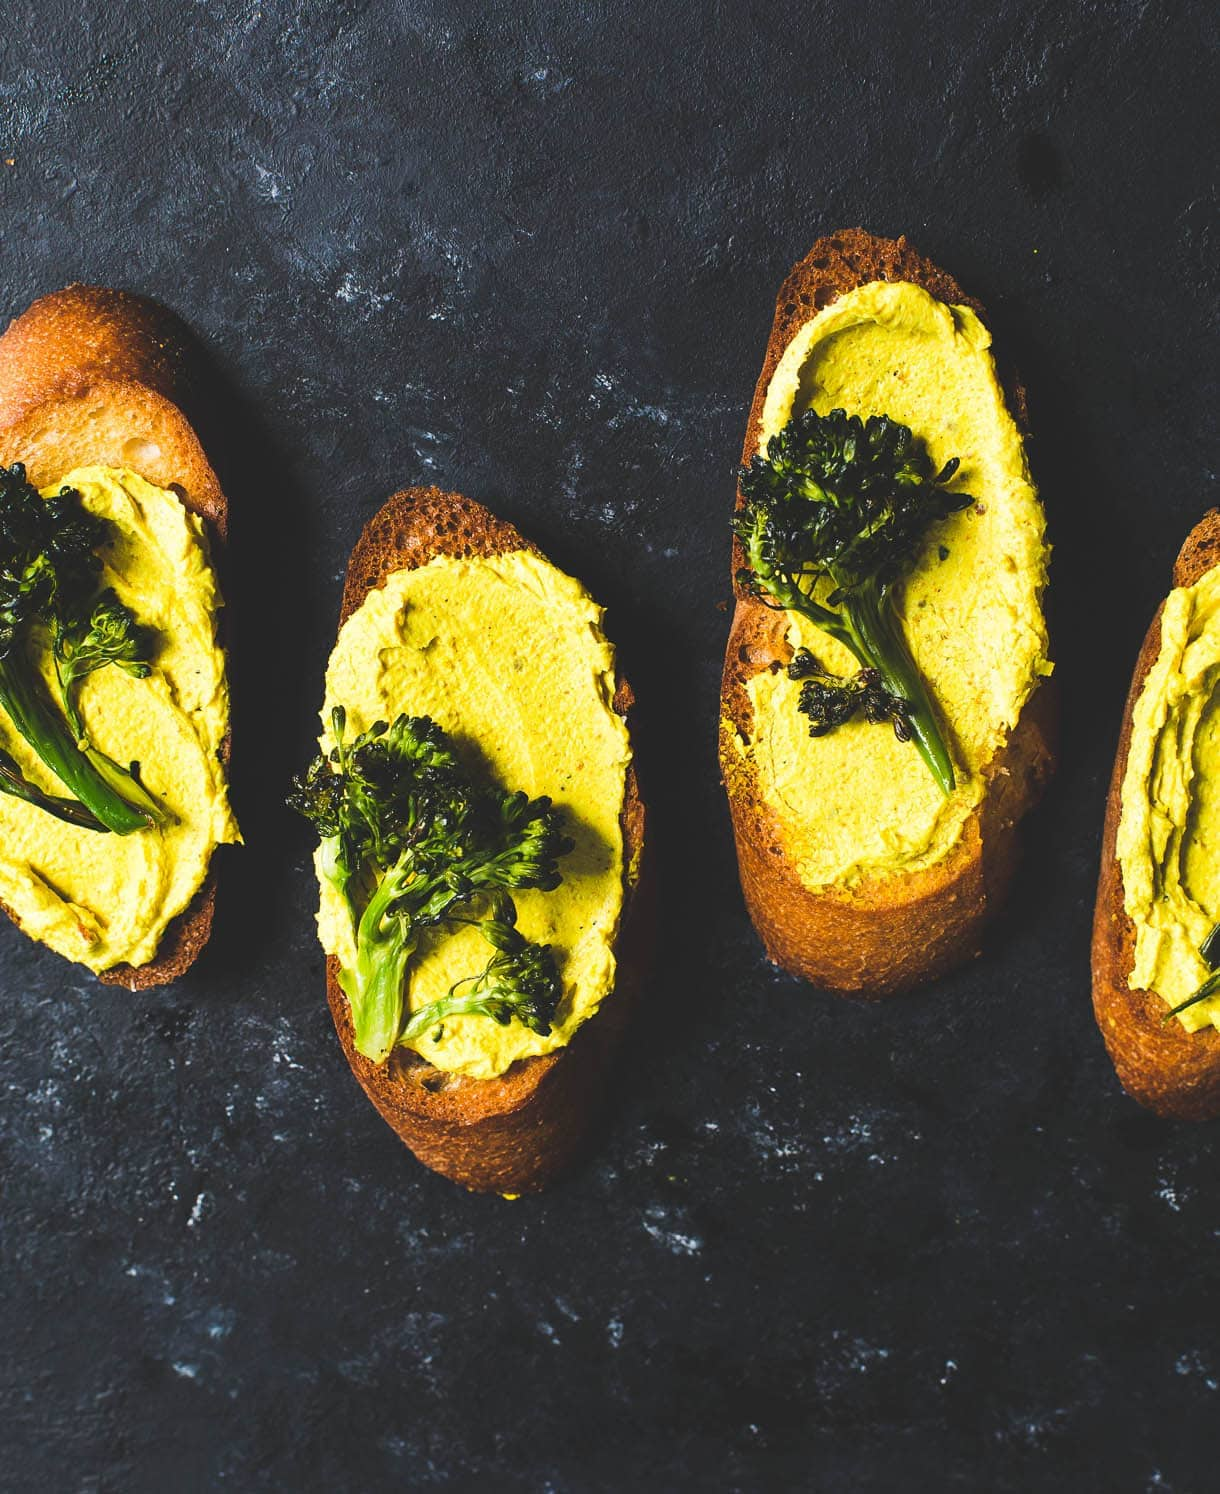 Roasted Broccoli and Turmeric Goat Cheese Crostini {heartbeet kitchen blog}